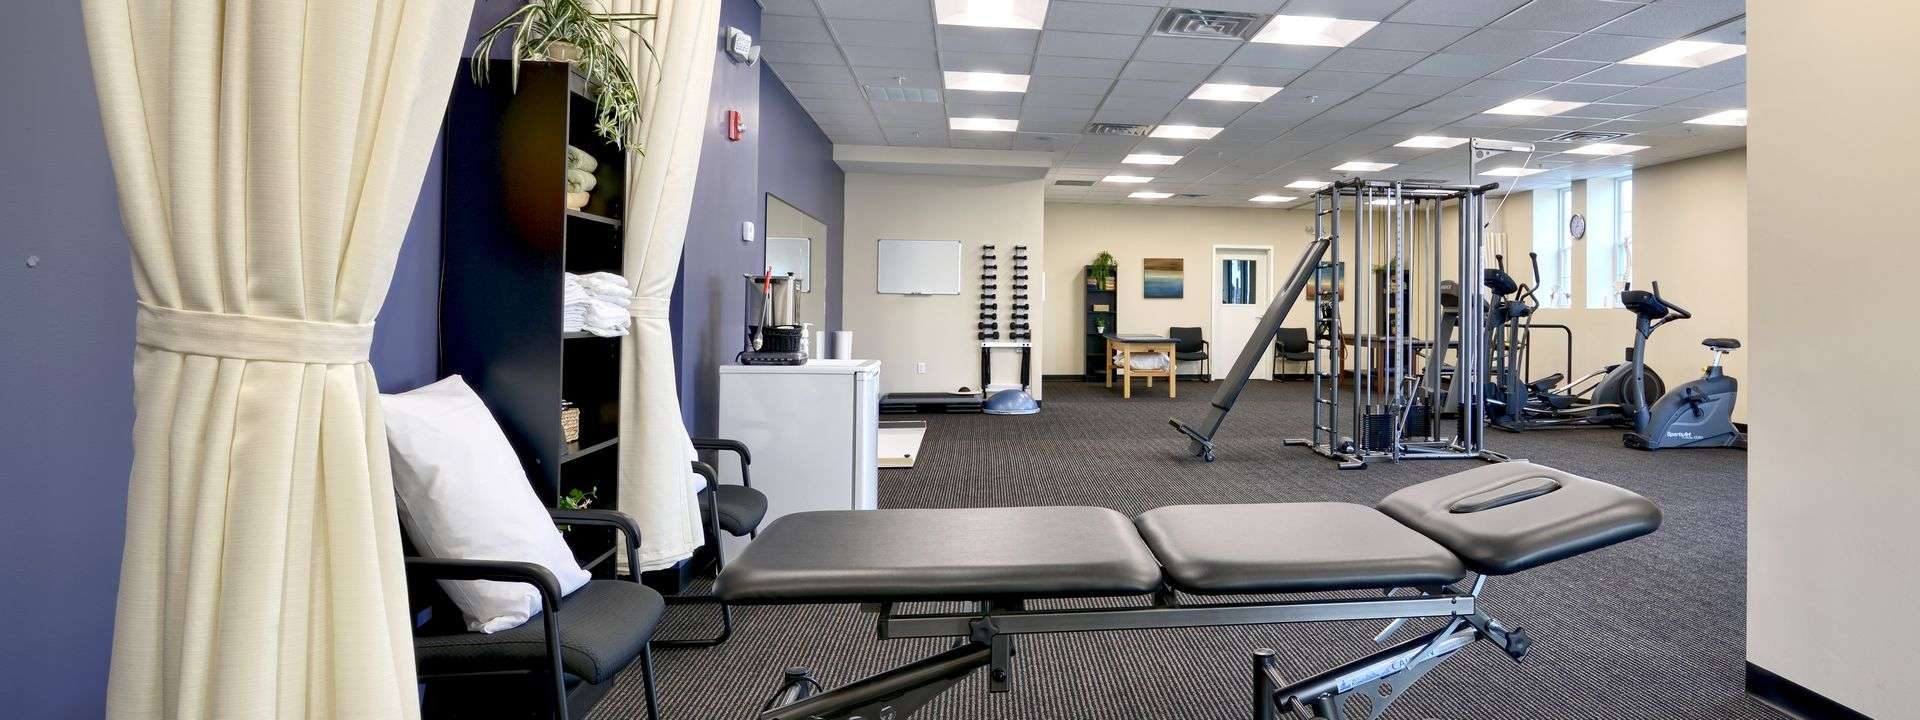 Interior of our physical therapy and sports medicine clinic in Waltham, Massachusetts.